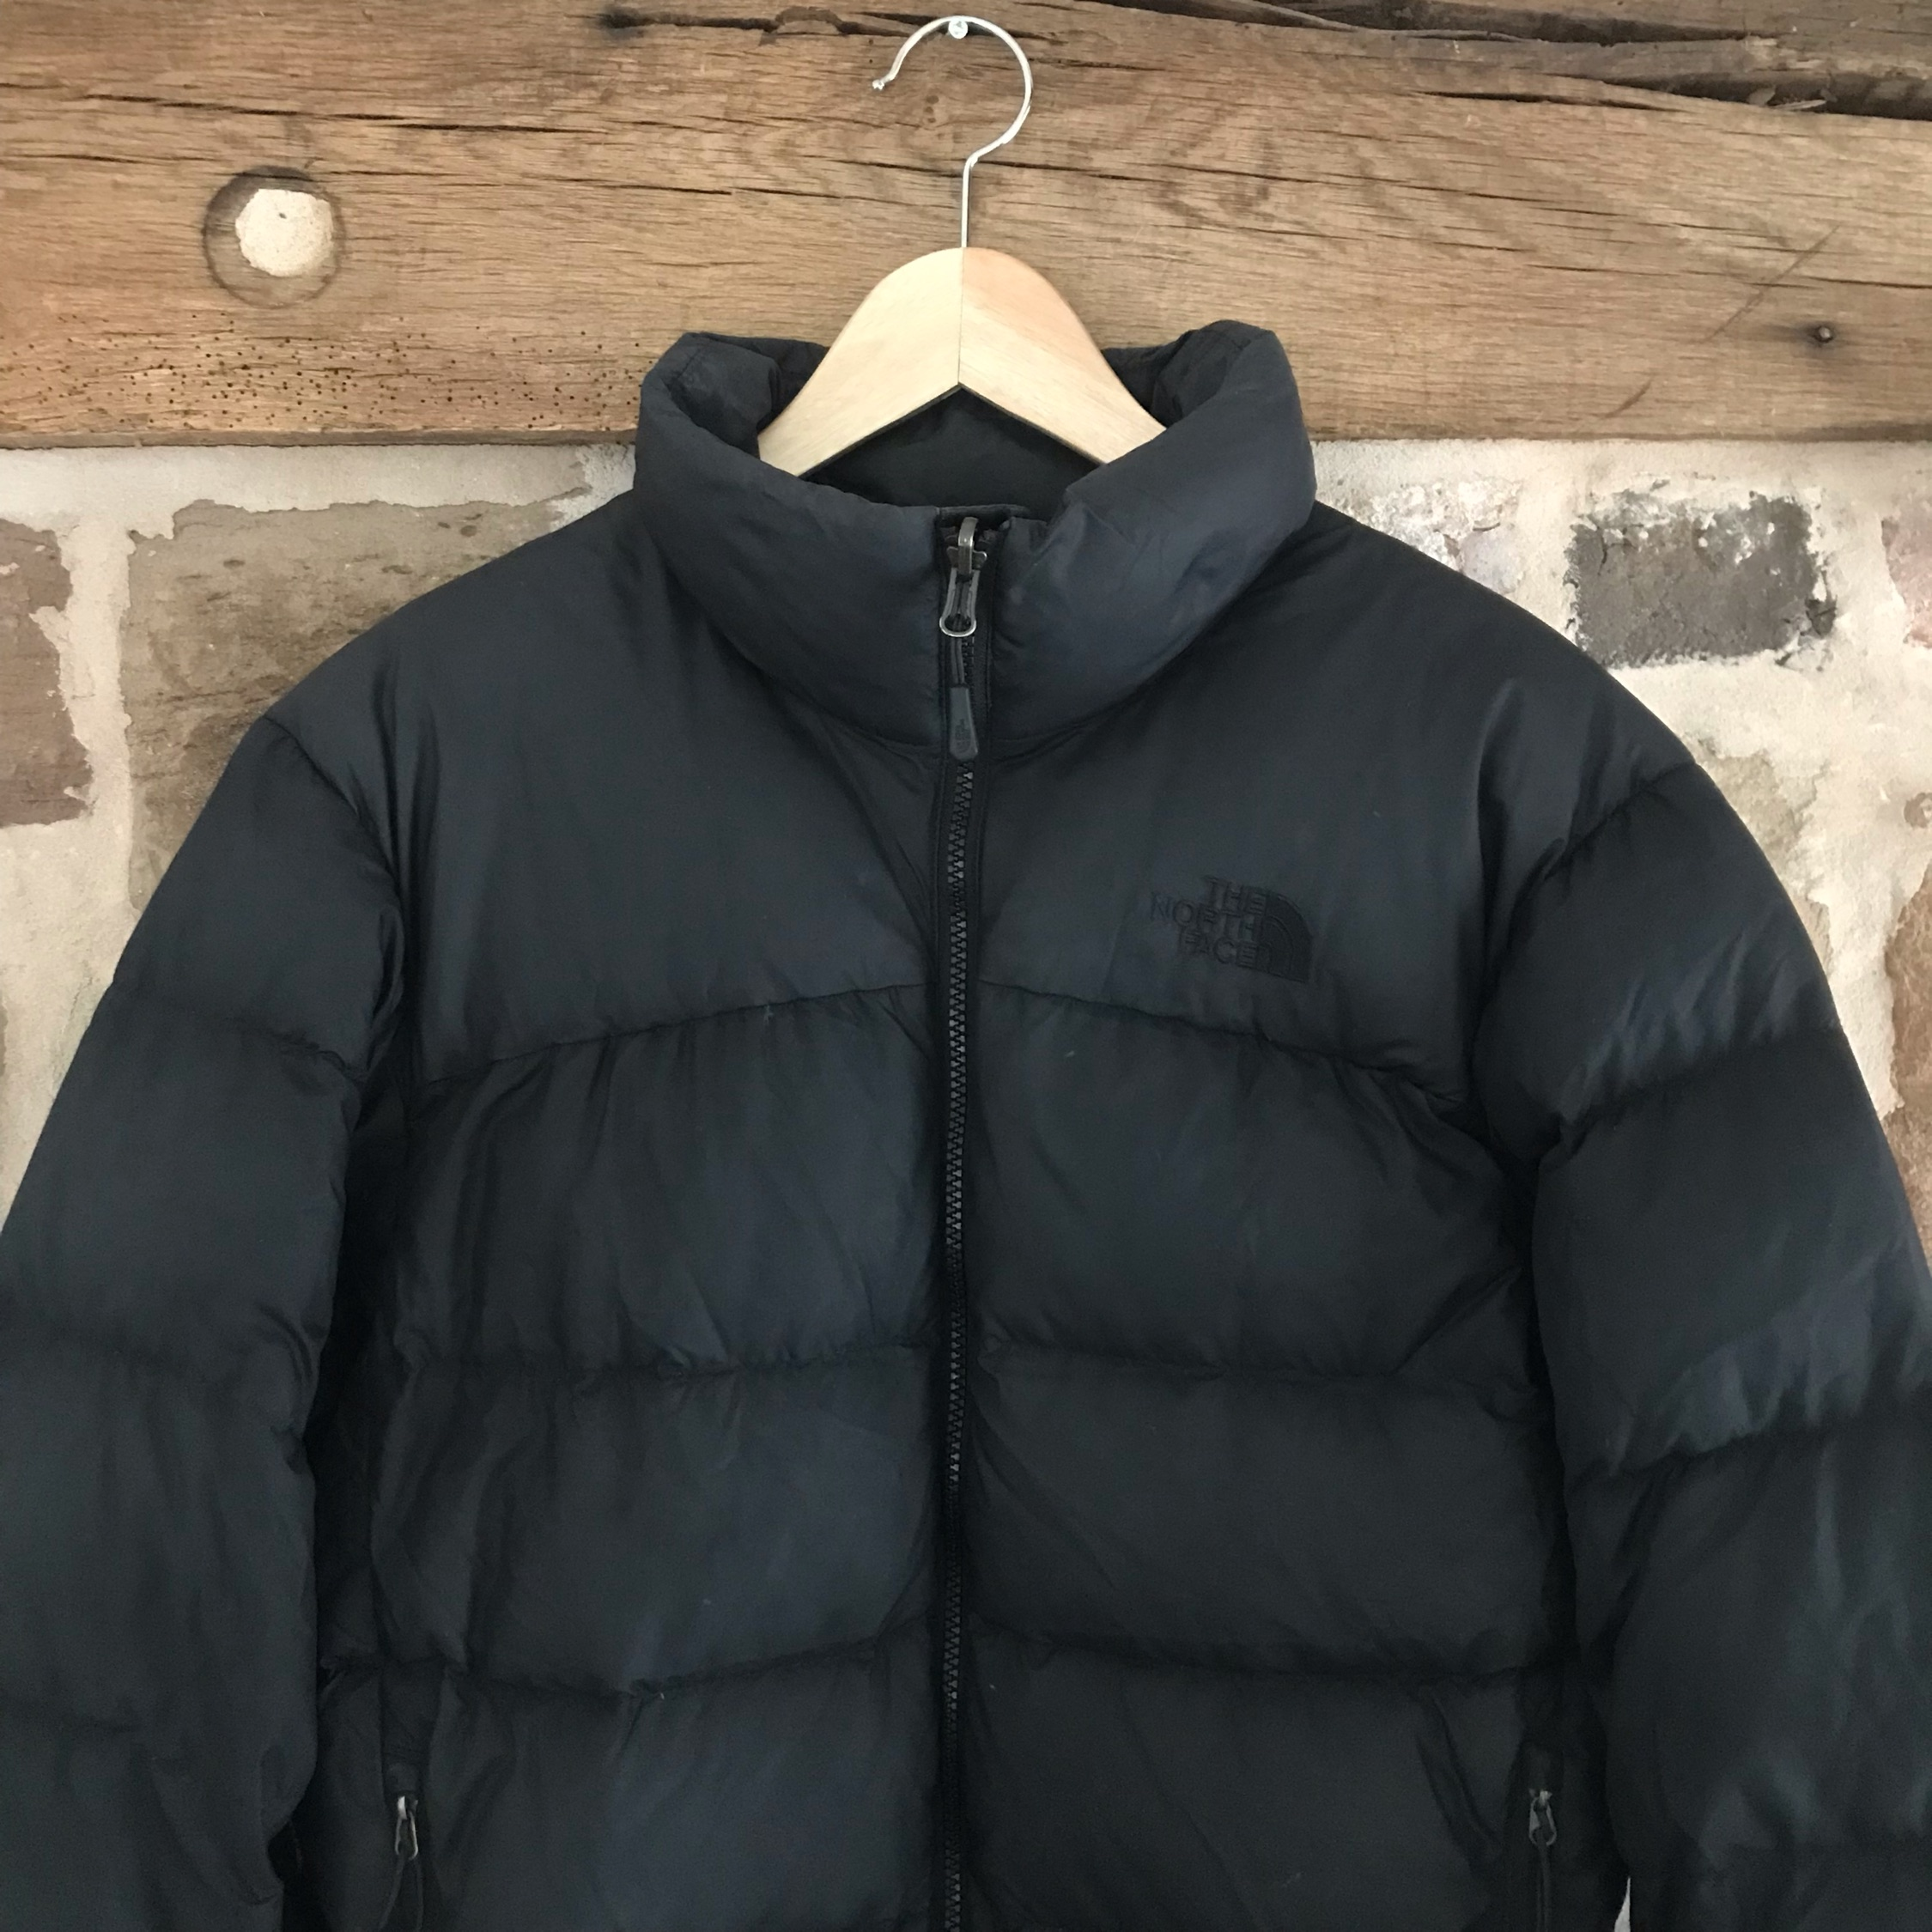 popular stores best sell great fit The North Face All Black Nuptse Ii 700 Jacket